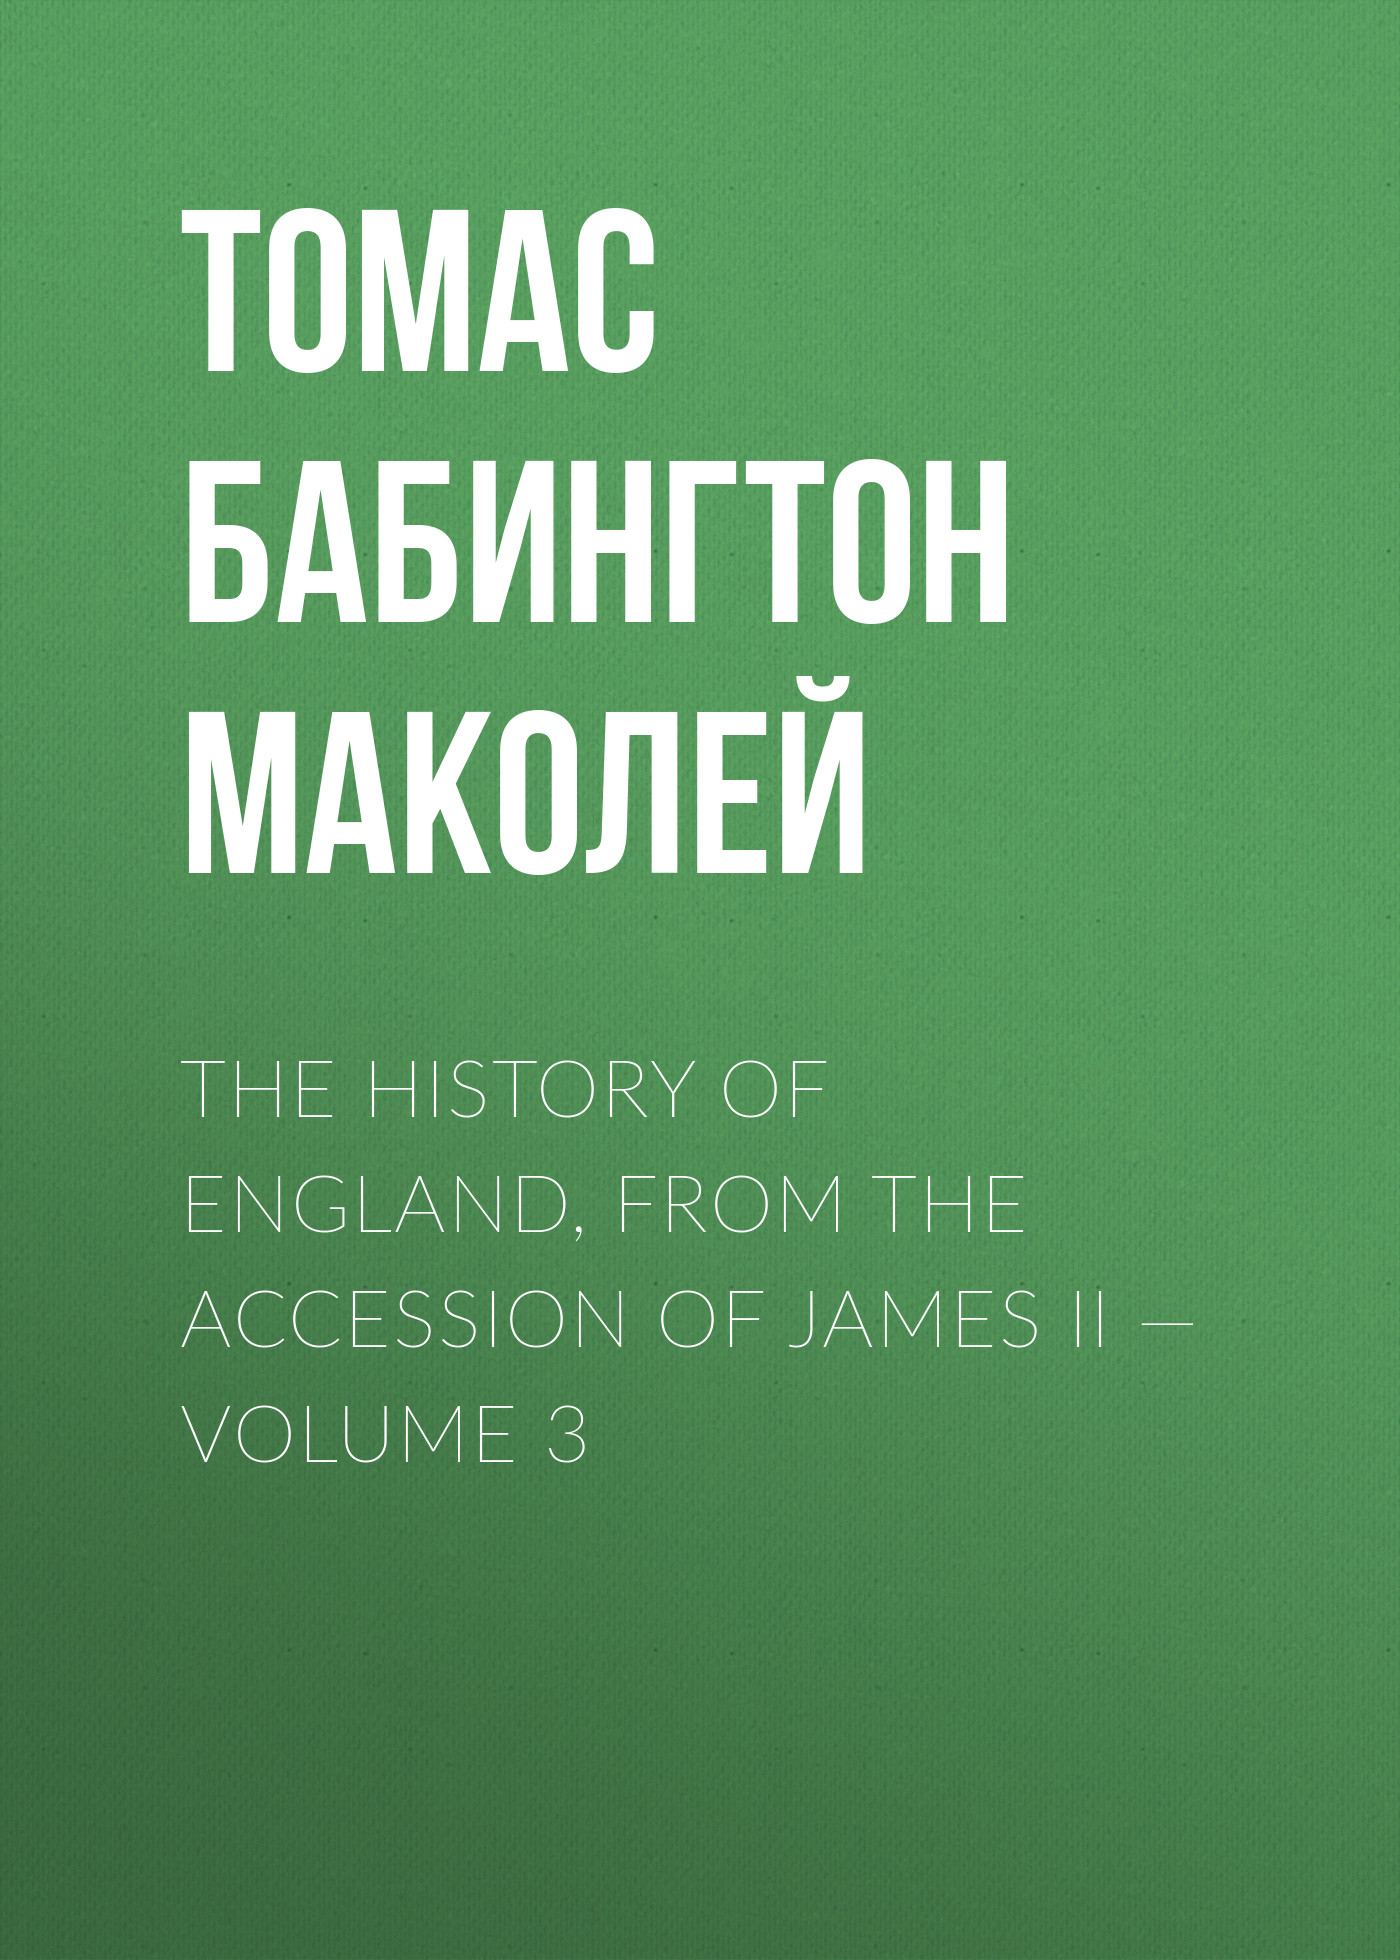 Фото - Томас Бабингтон Маколей The History of England, from the Accession of James II — Volume 3 m guizot history of richard cromwell and the restoration of charles ii volume 2